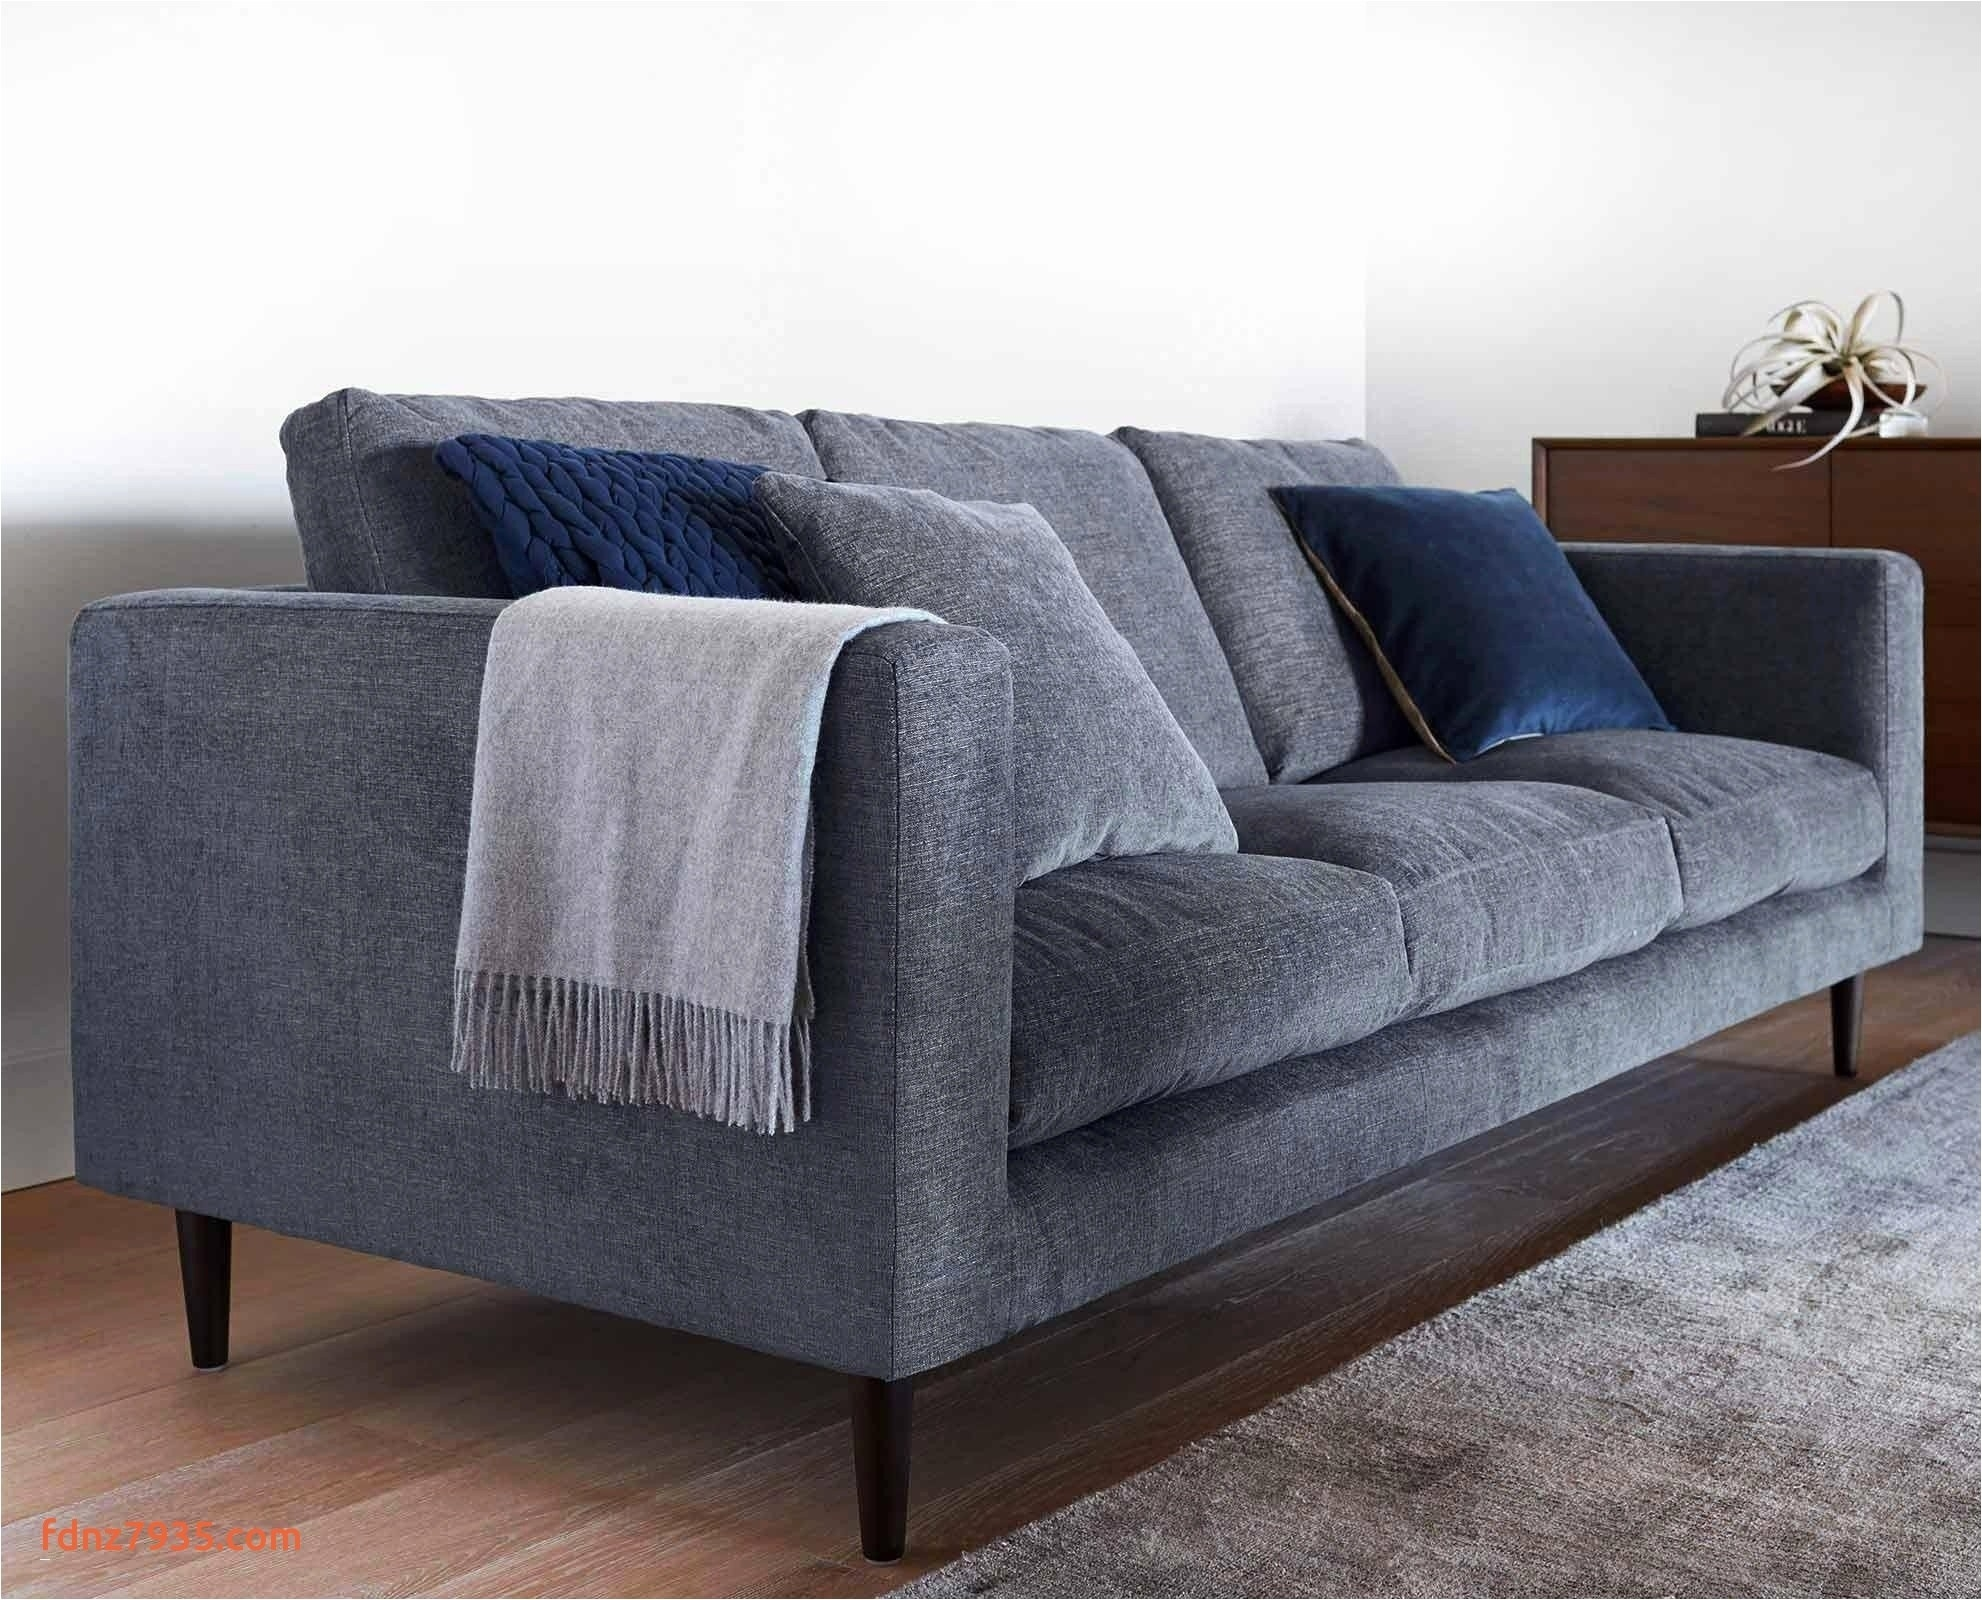 Sleeper Sofa With Chaise Storage | Thesofasite (View 22 of 25)